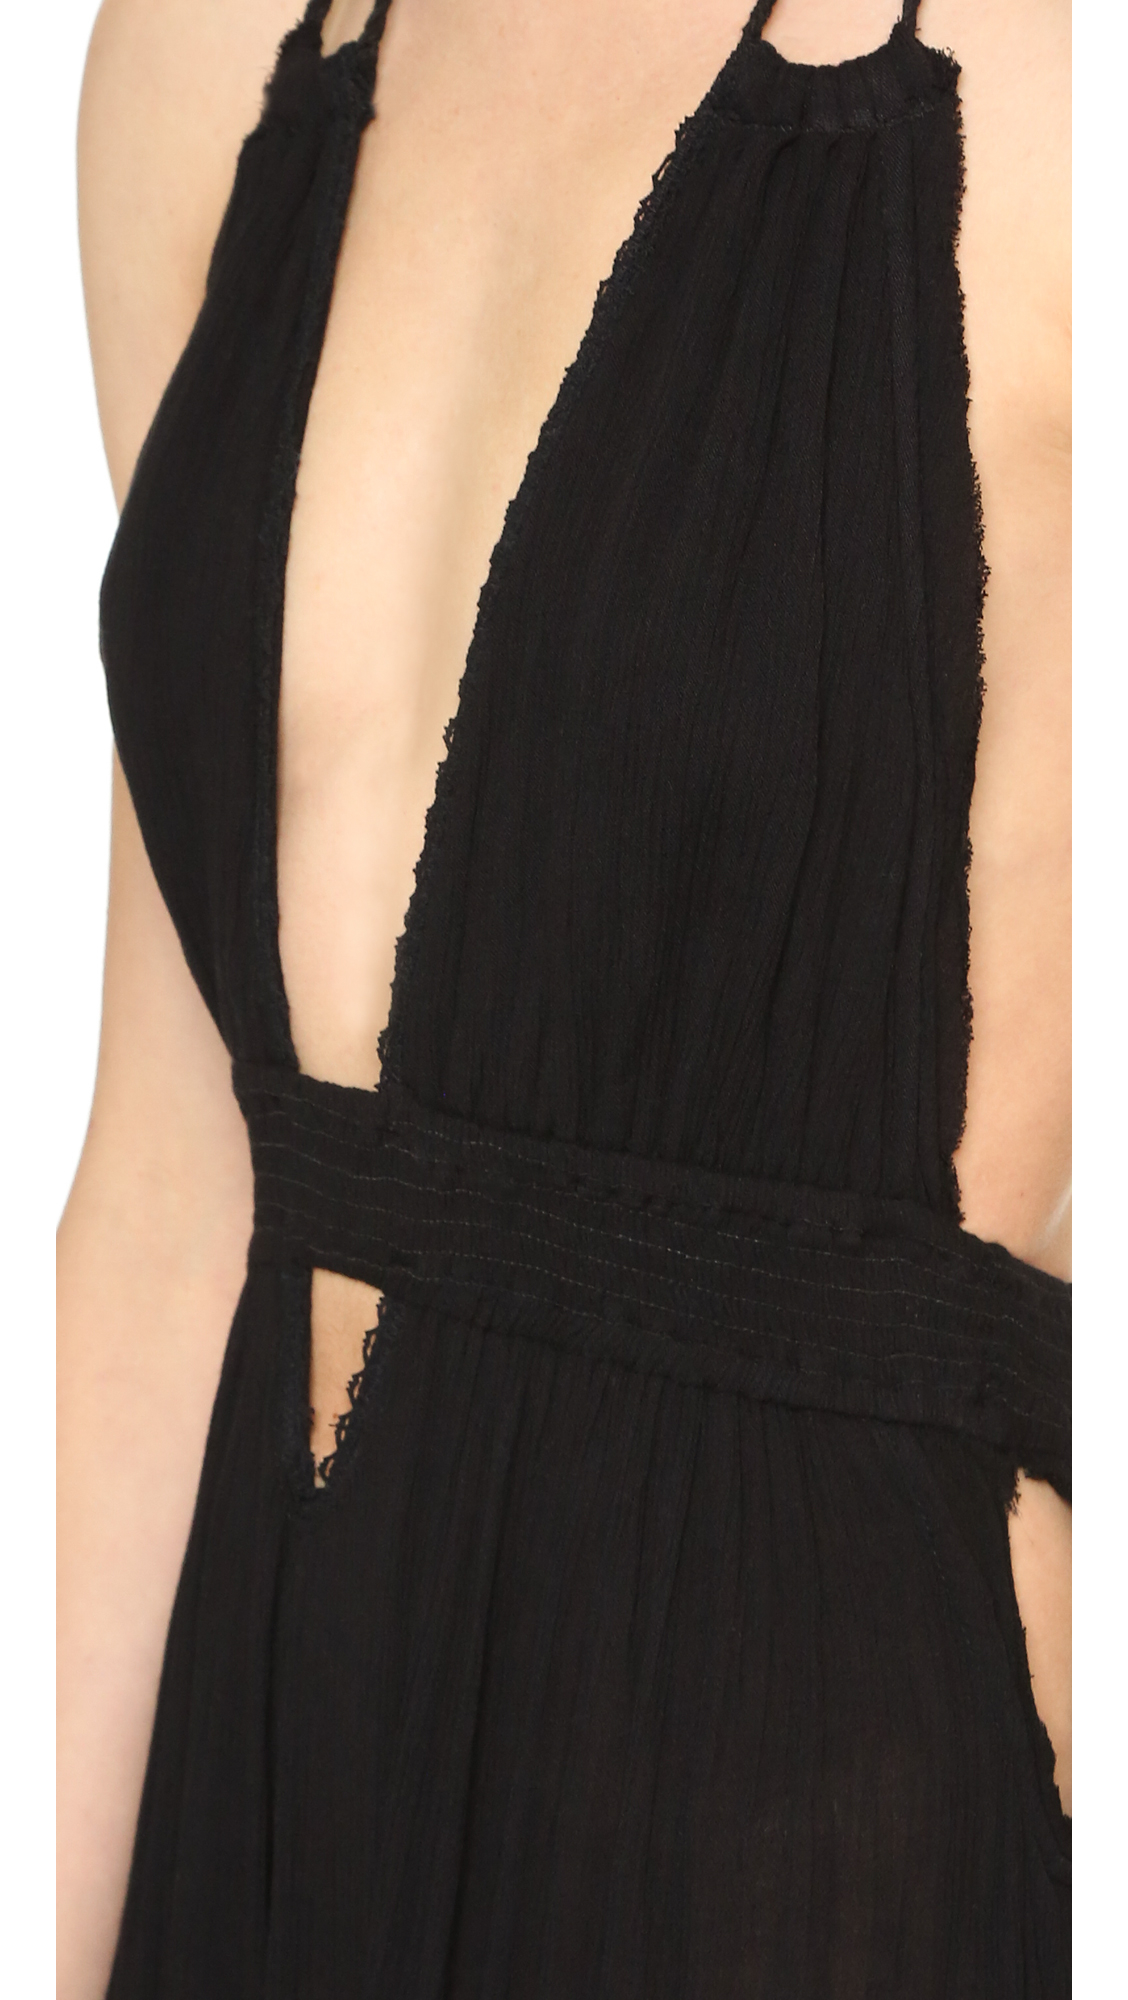 Lyst - Free People Look Into The Sun Maxi Dress in Black e3ae5f9b9